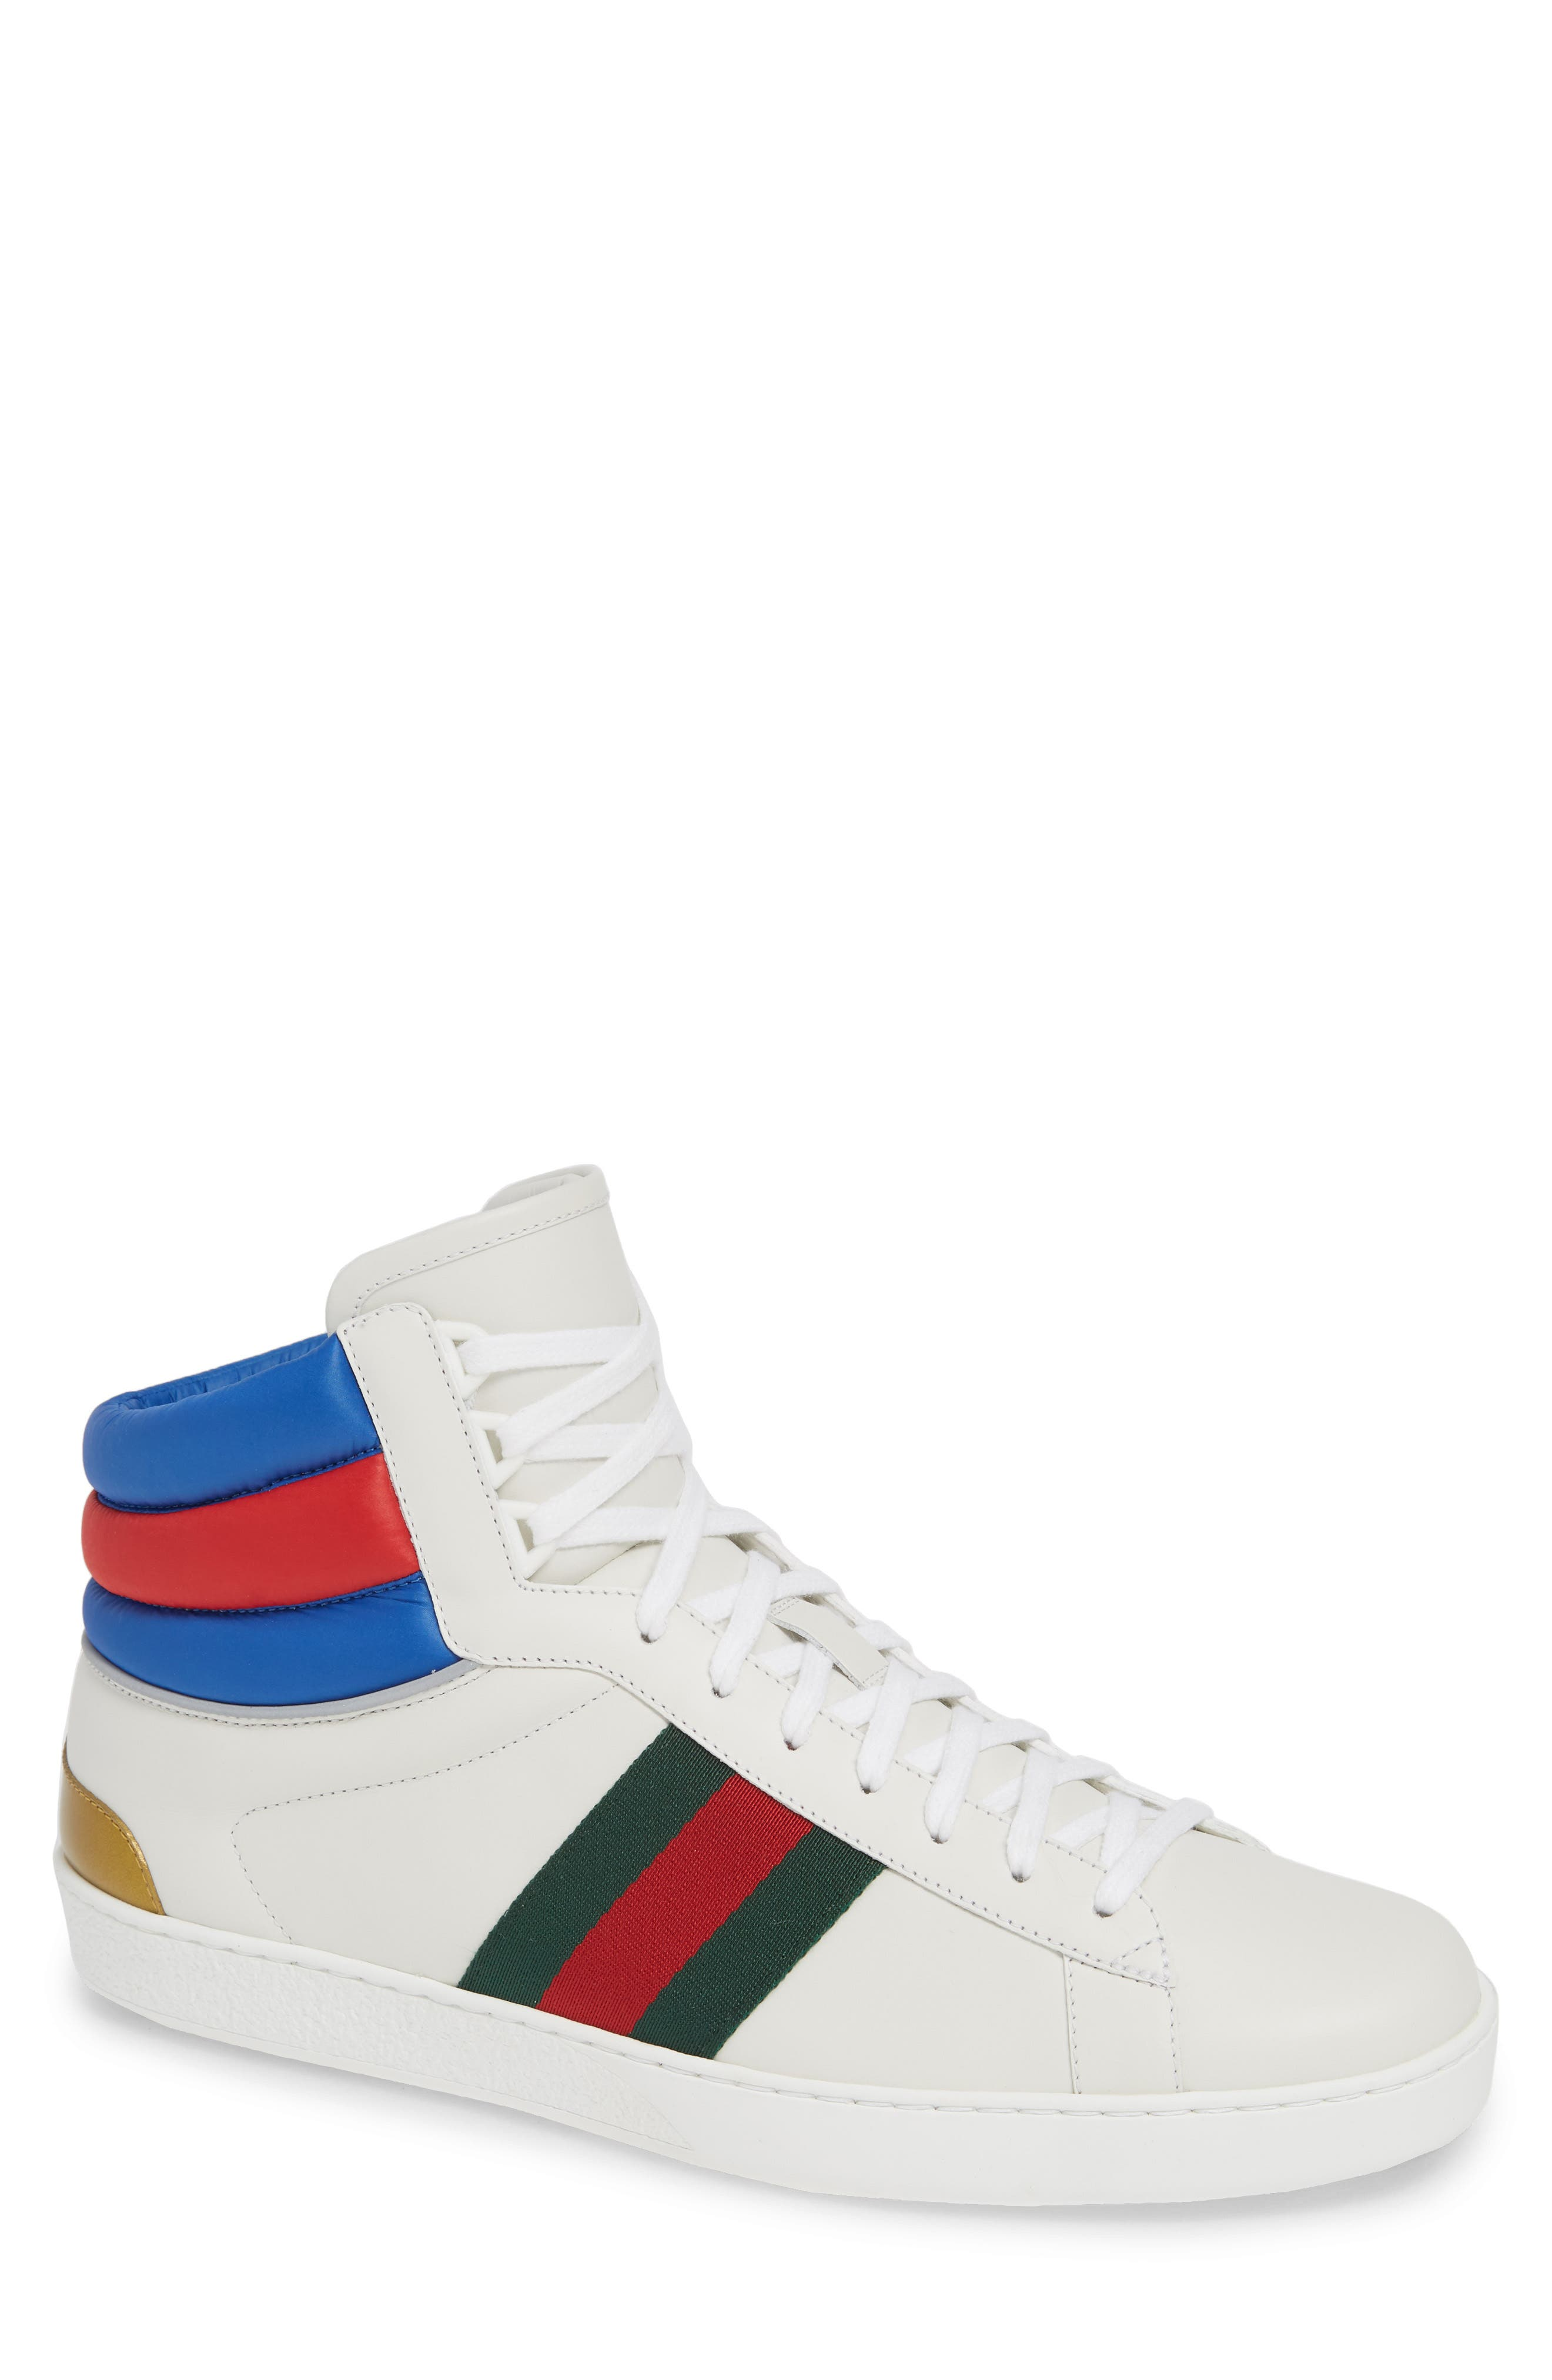 New Ace Stripe High Top Sneaker,                             Main thumbnail 1, color,                             BIANCO WHITE